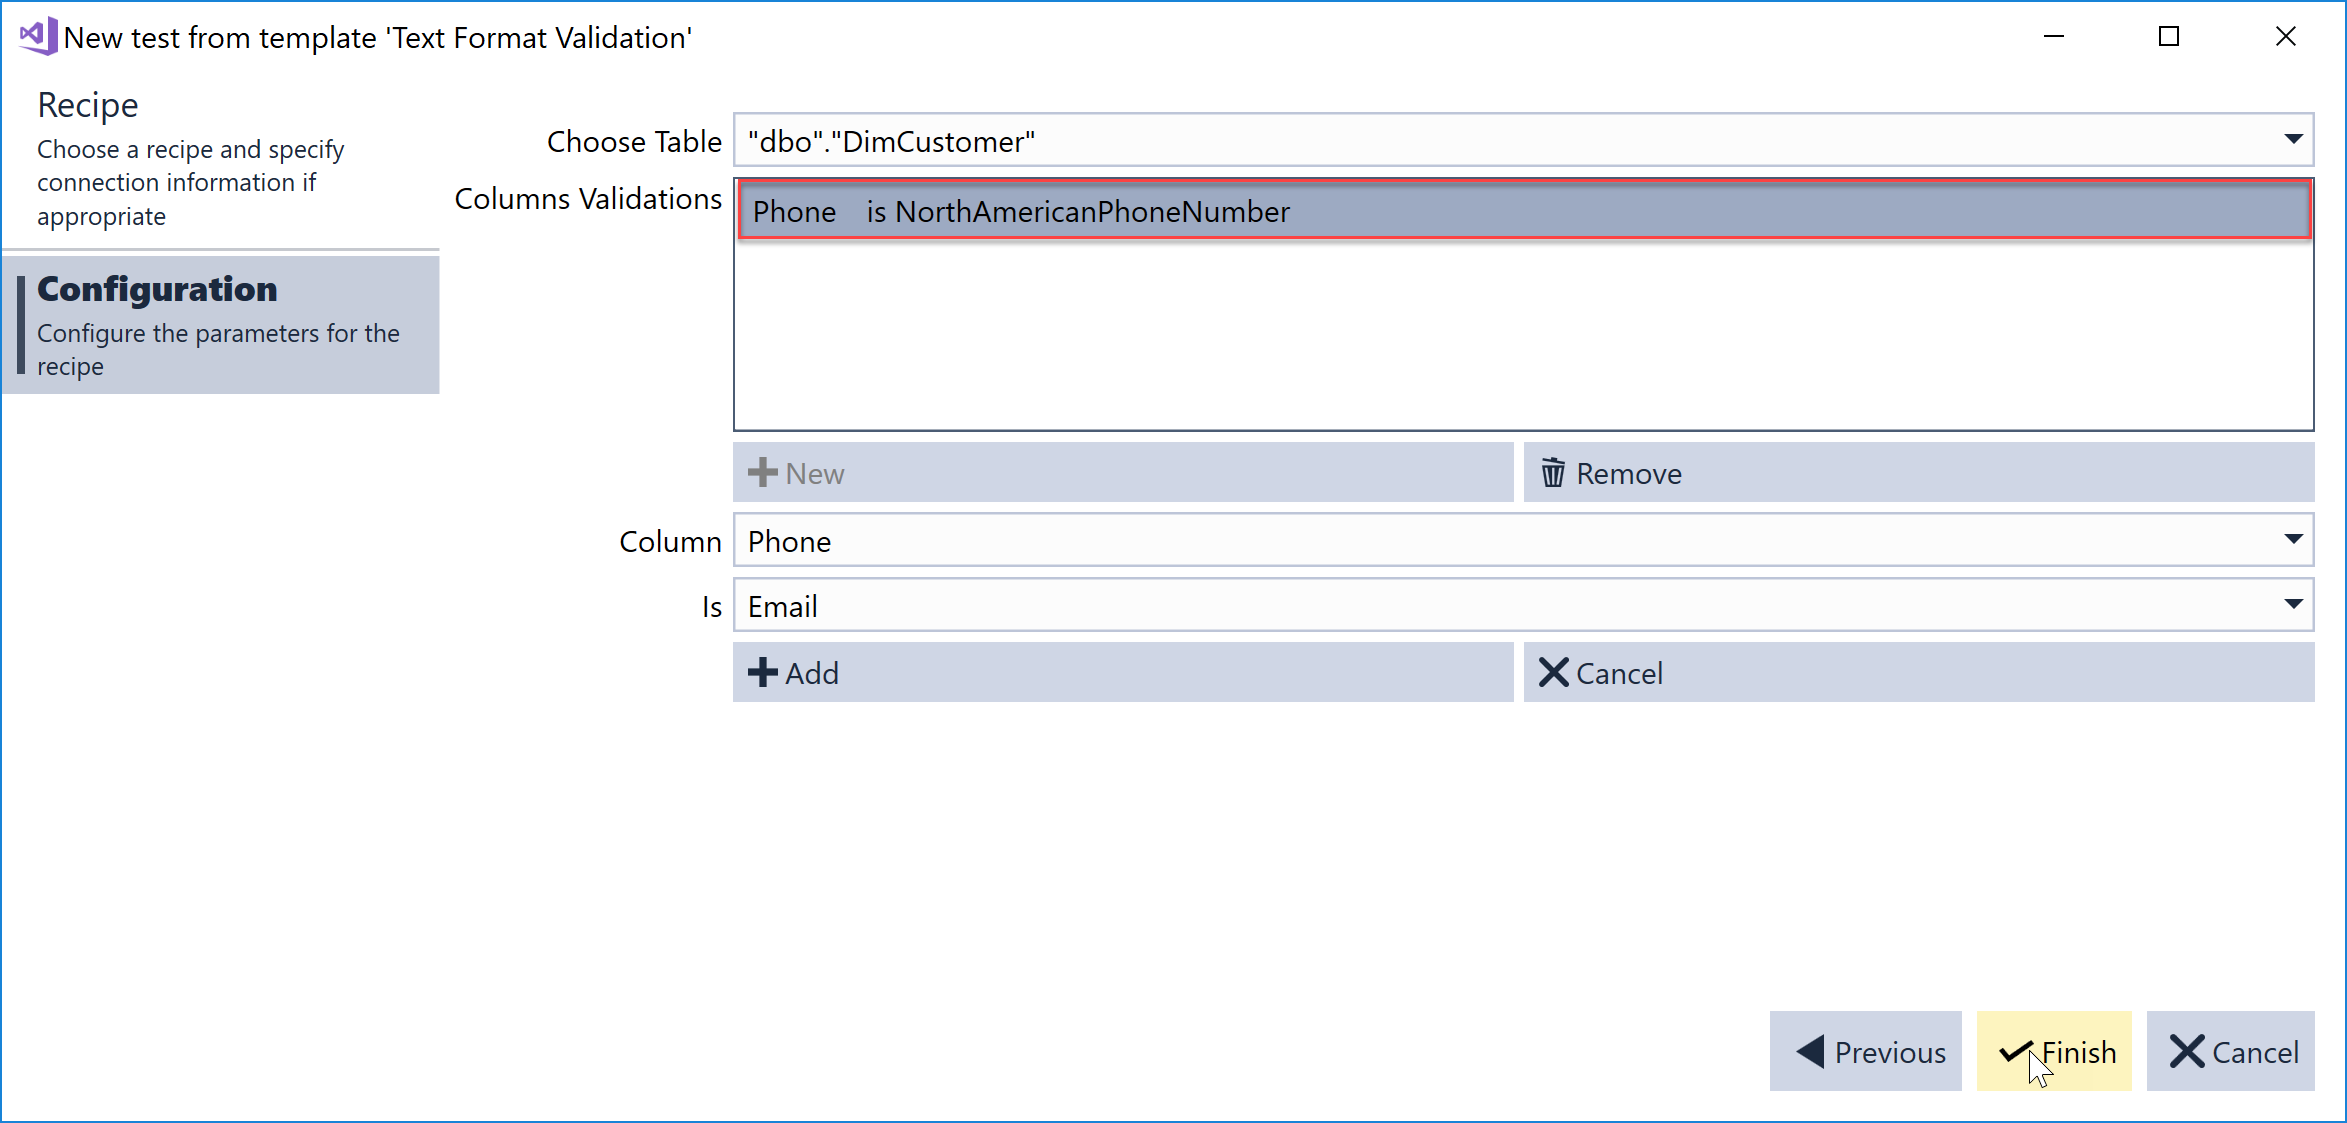 SentryOne Test Text Format Validation recipe column validation added